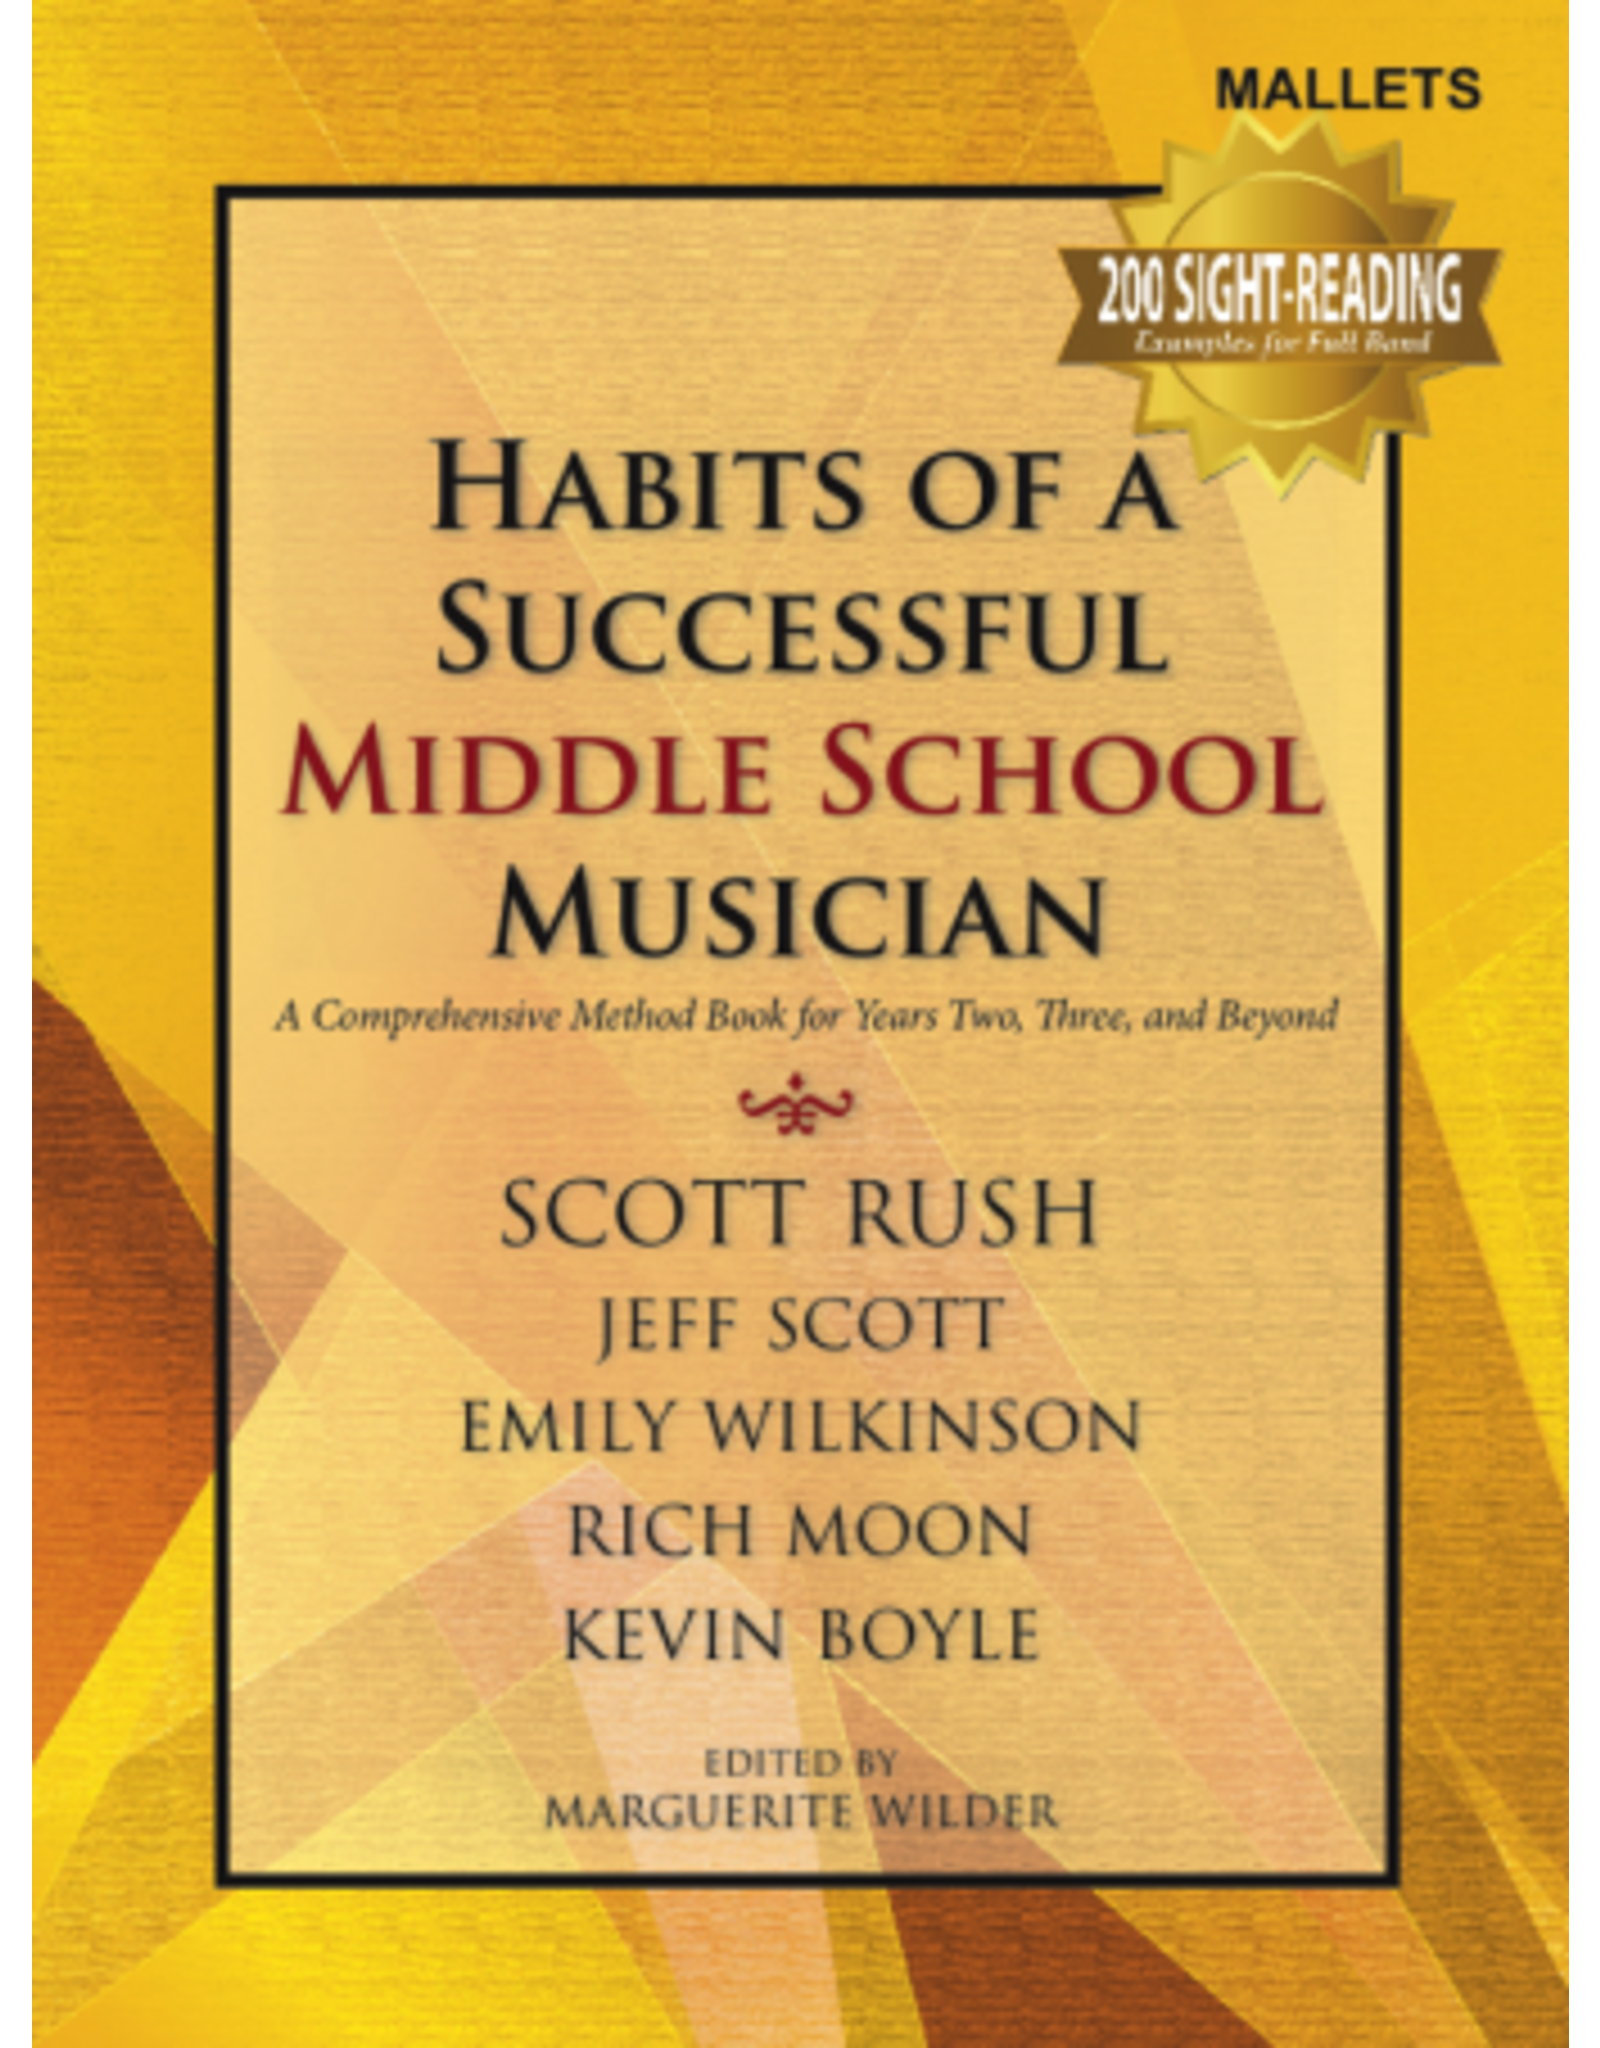 GIA Publications Habits of a Successful Middle School Musician-Mallets